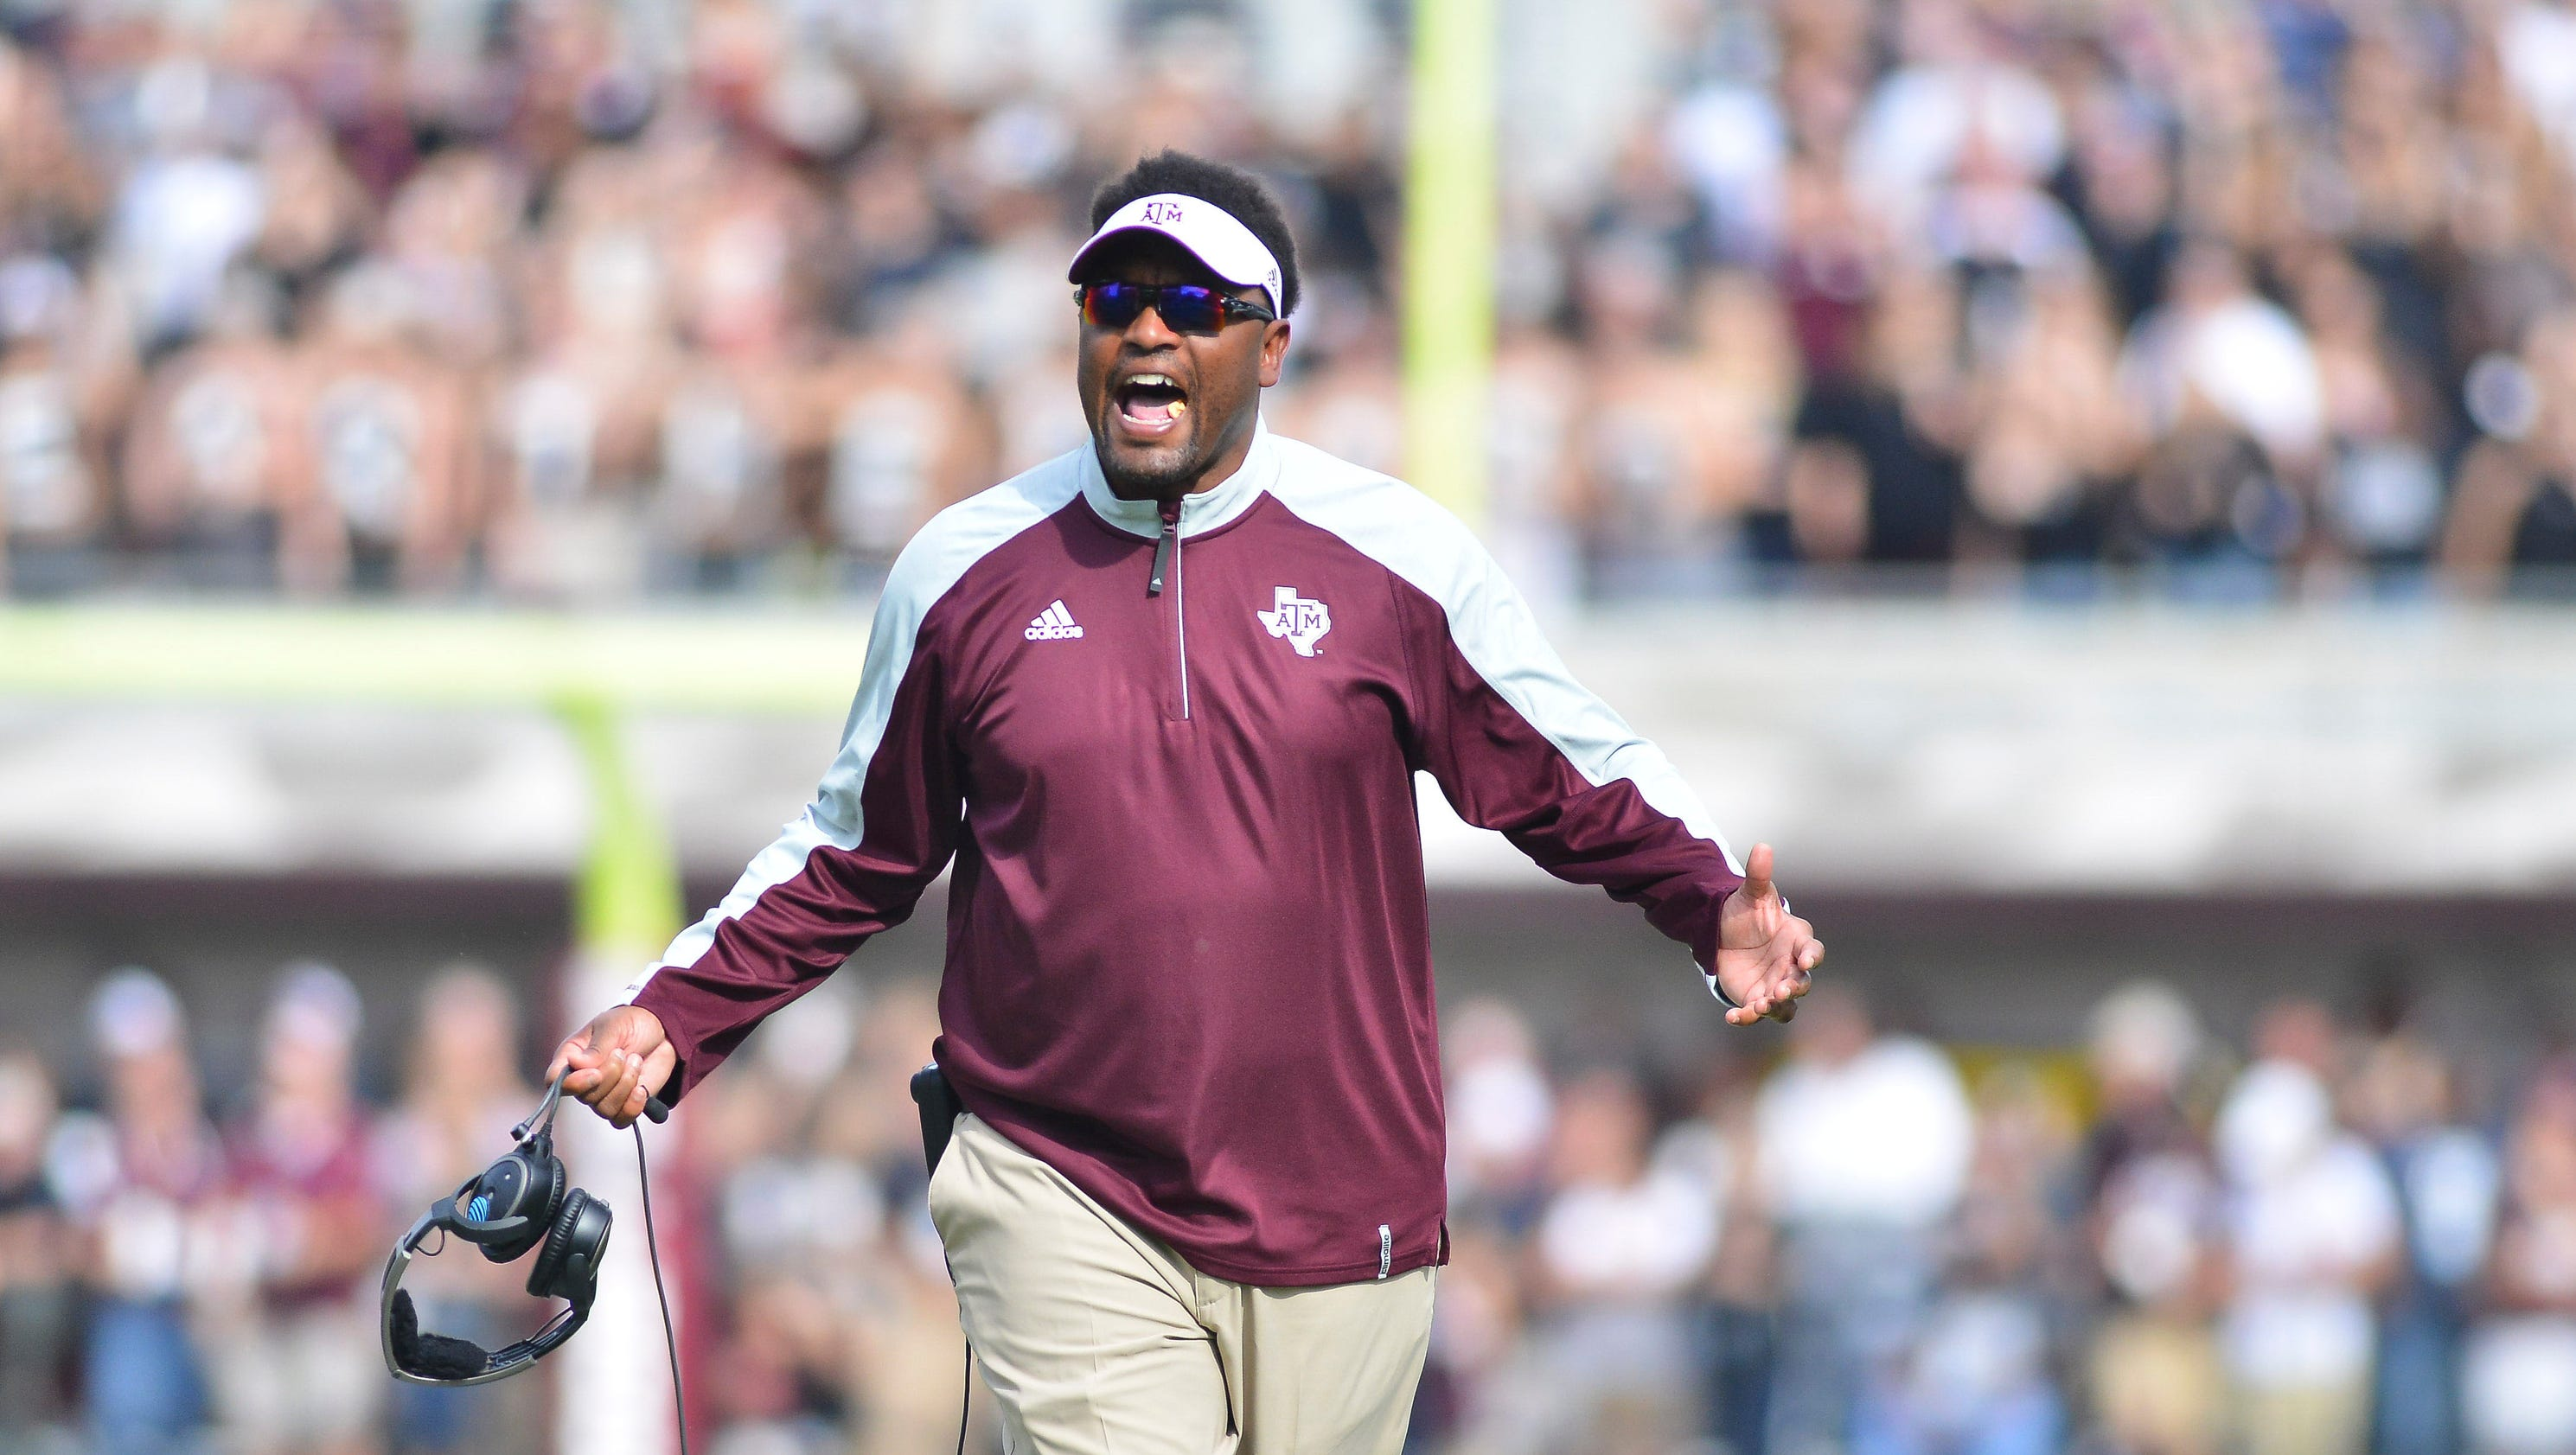 636139628804871693-usp-ncaa-football-texas-a-m-at-mississippi-state-86491204